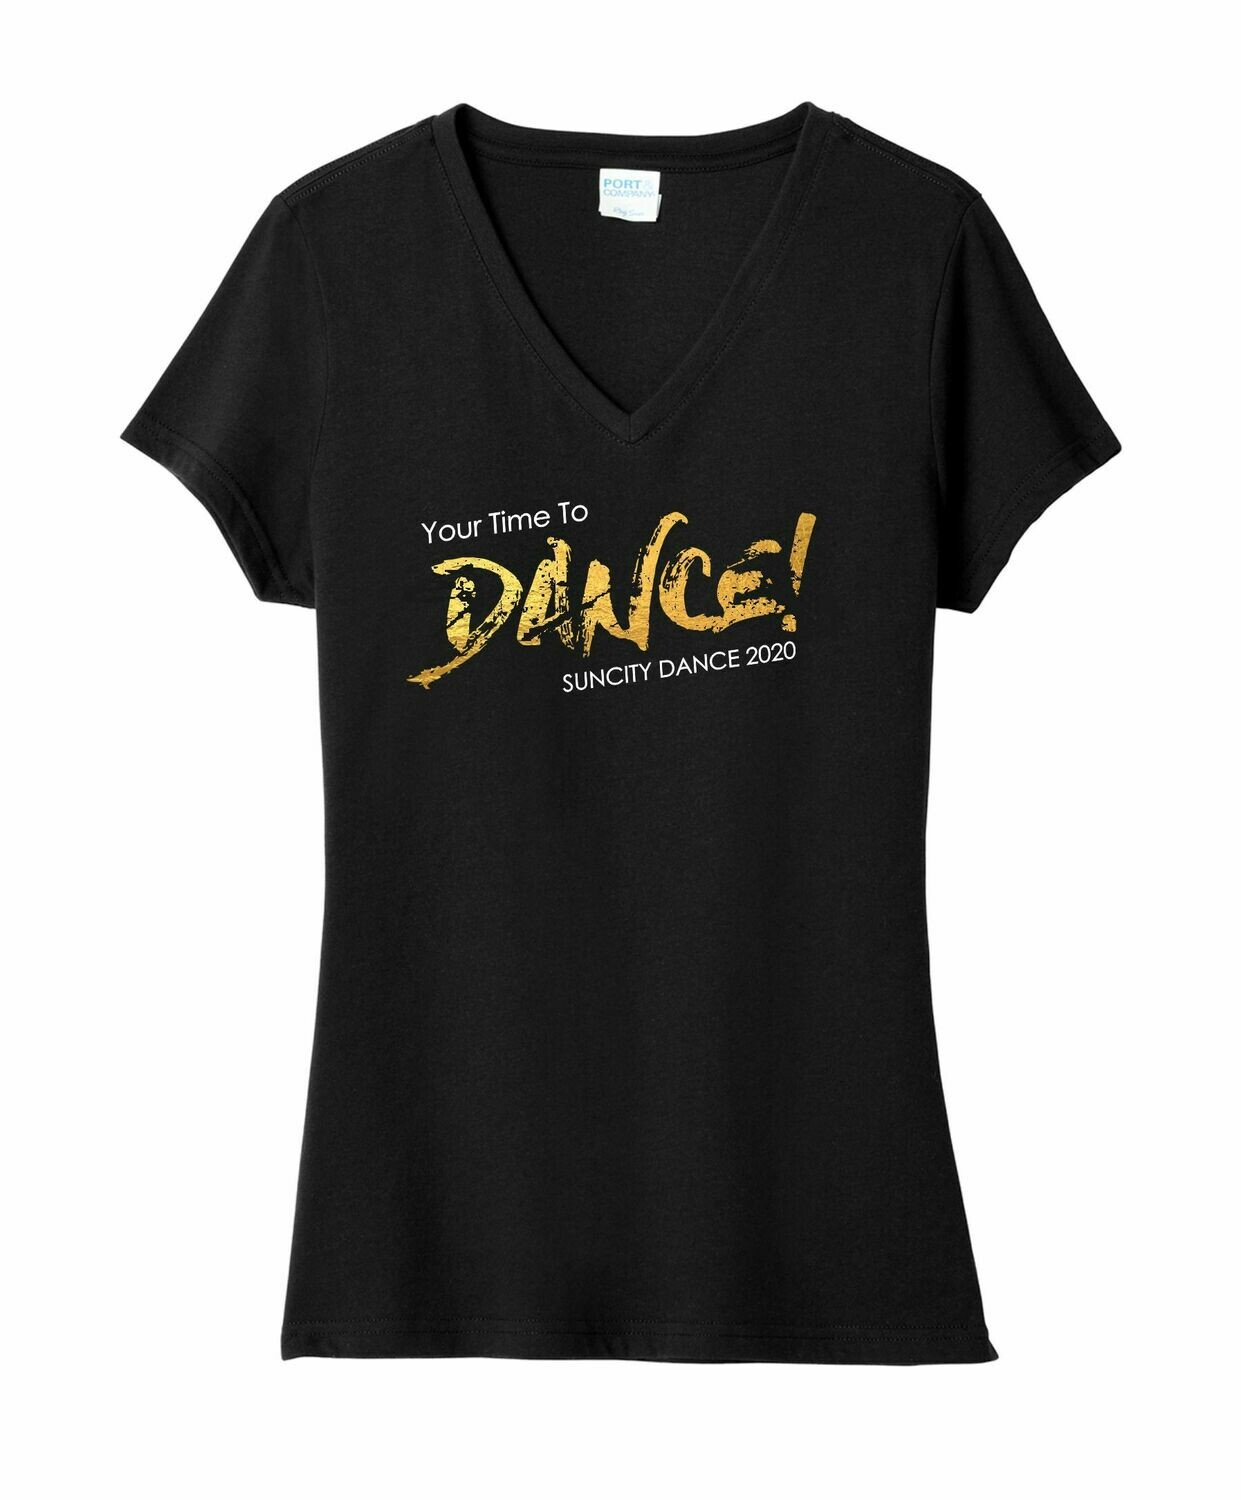 Your Time to Dance! Ladies V-Neck